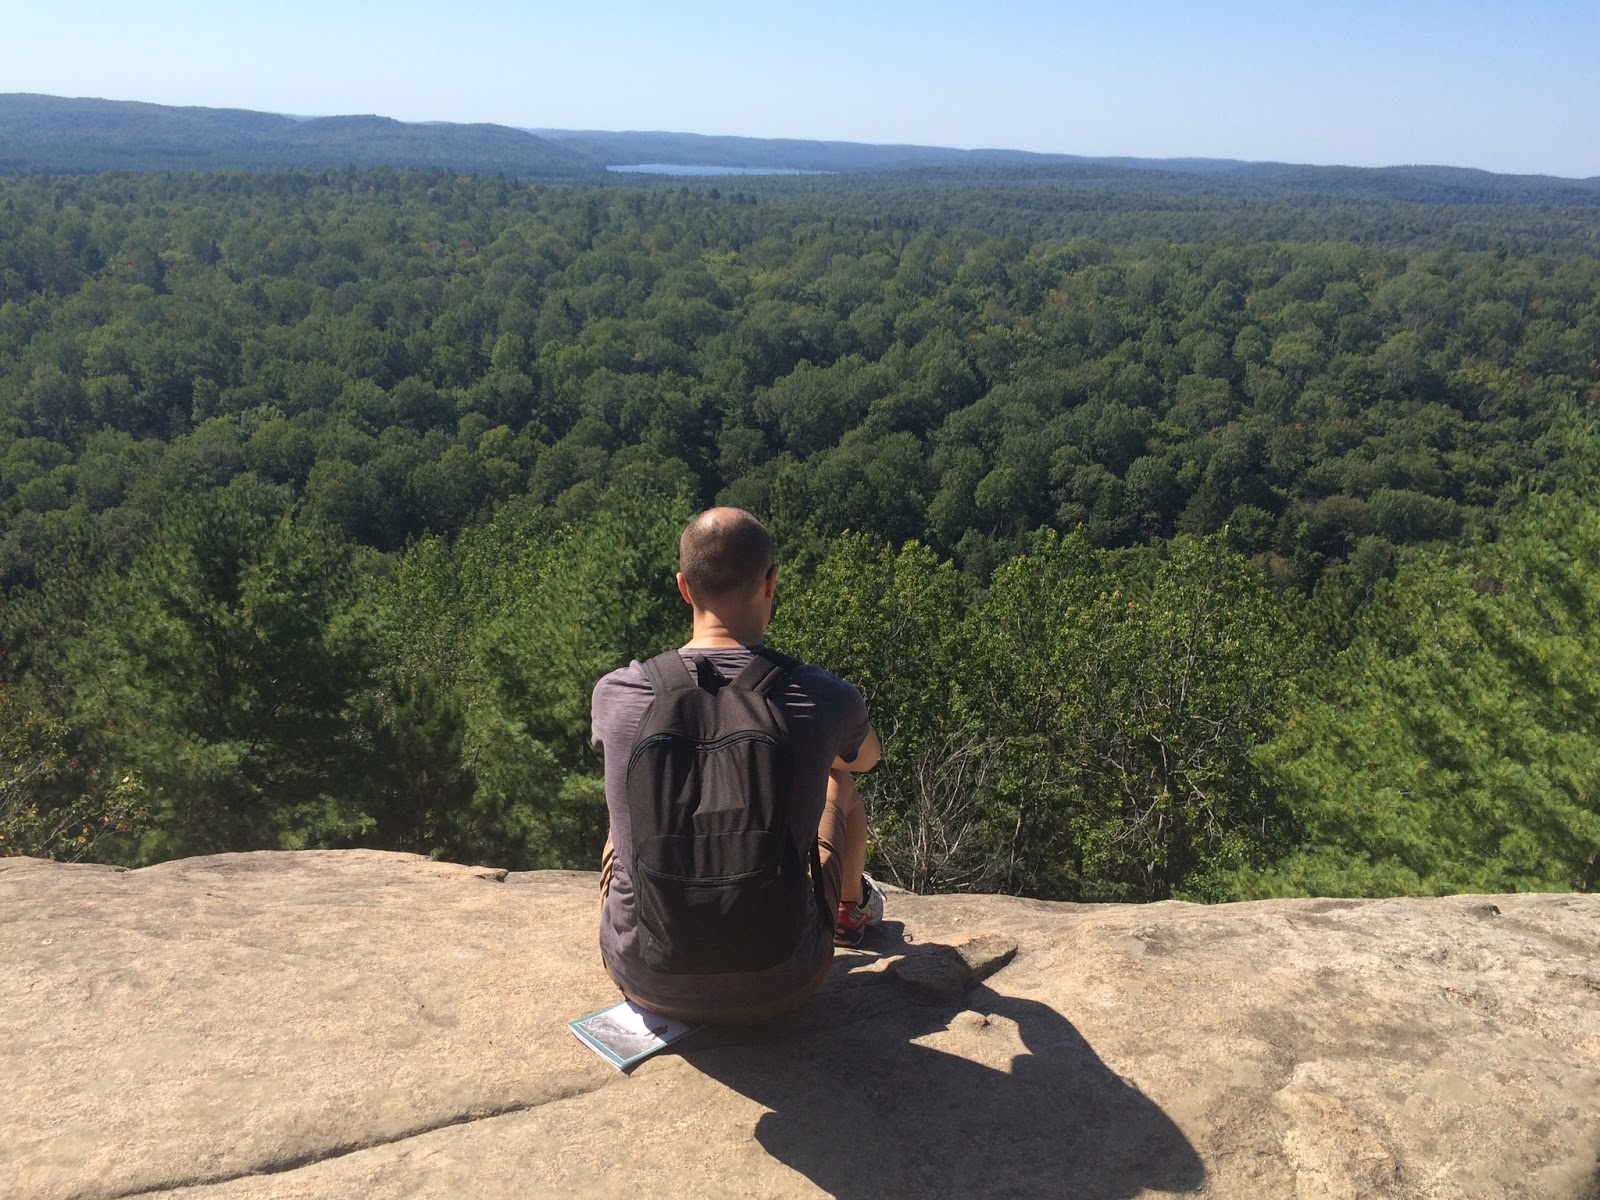 Algonquin Park in Canada - view from the top